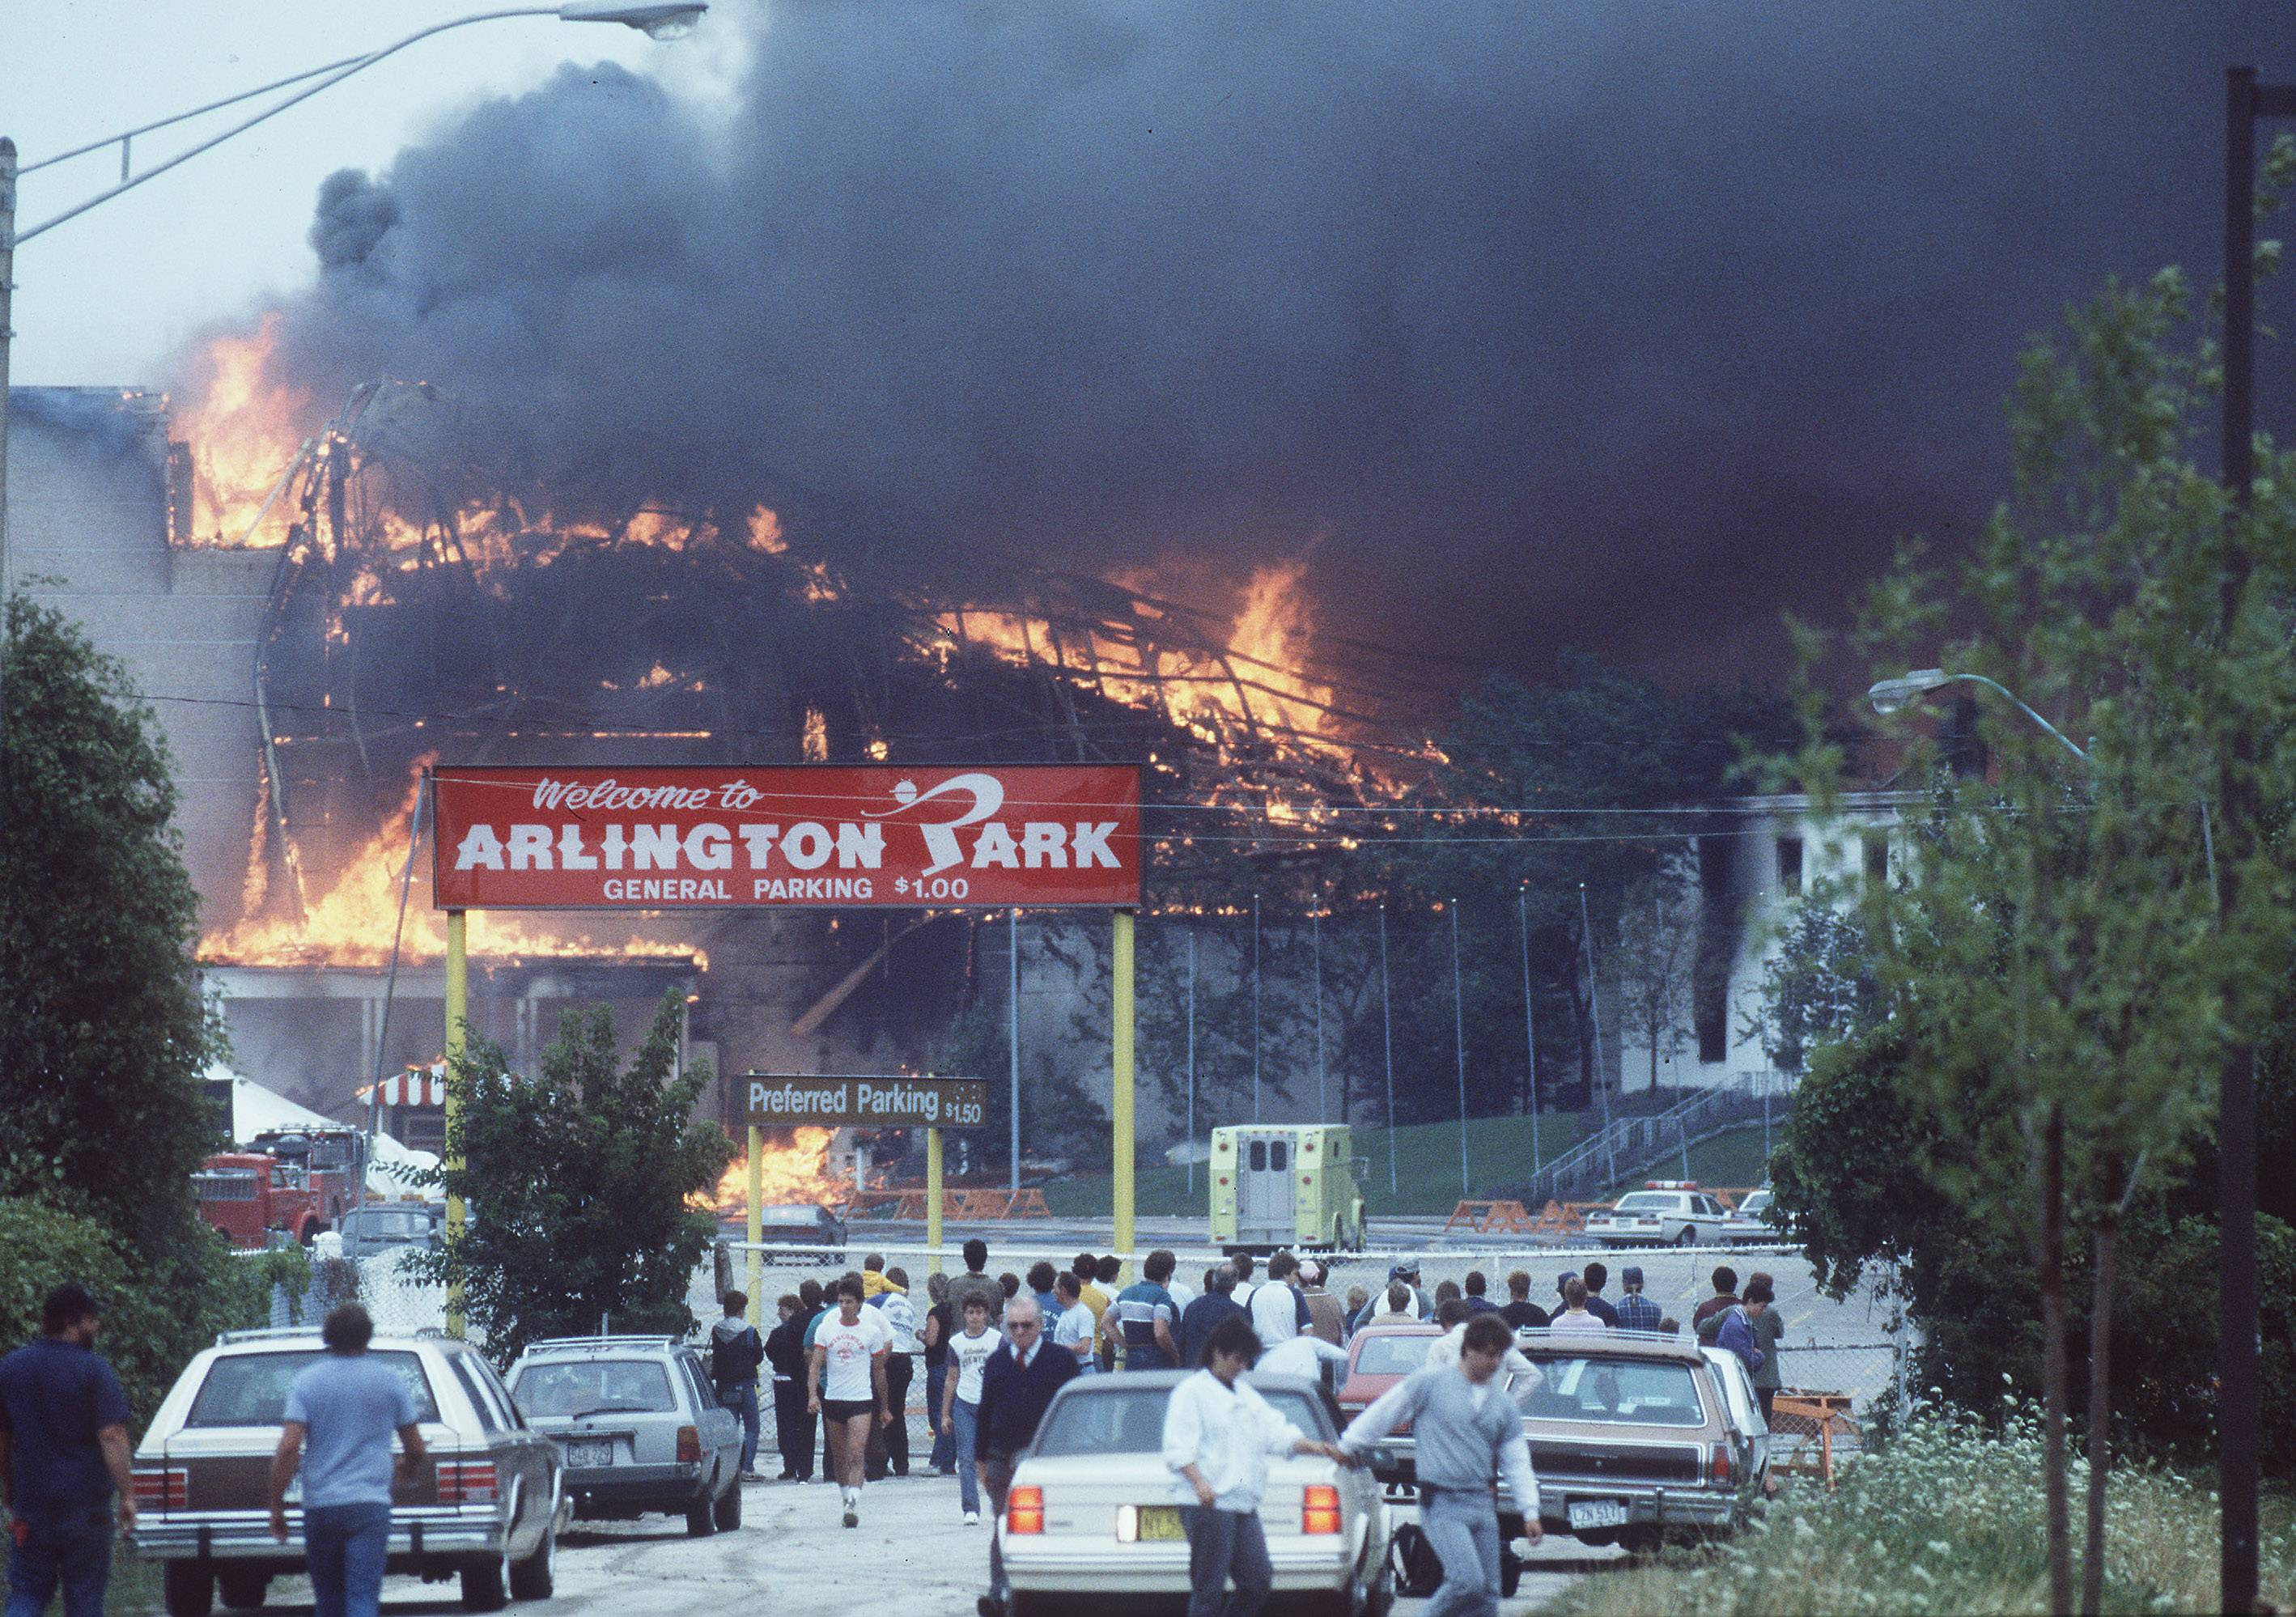 People come to watch as the Arlington Park fire rages out of control on July 31, 1985.